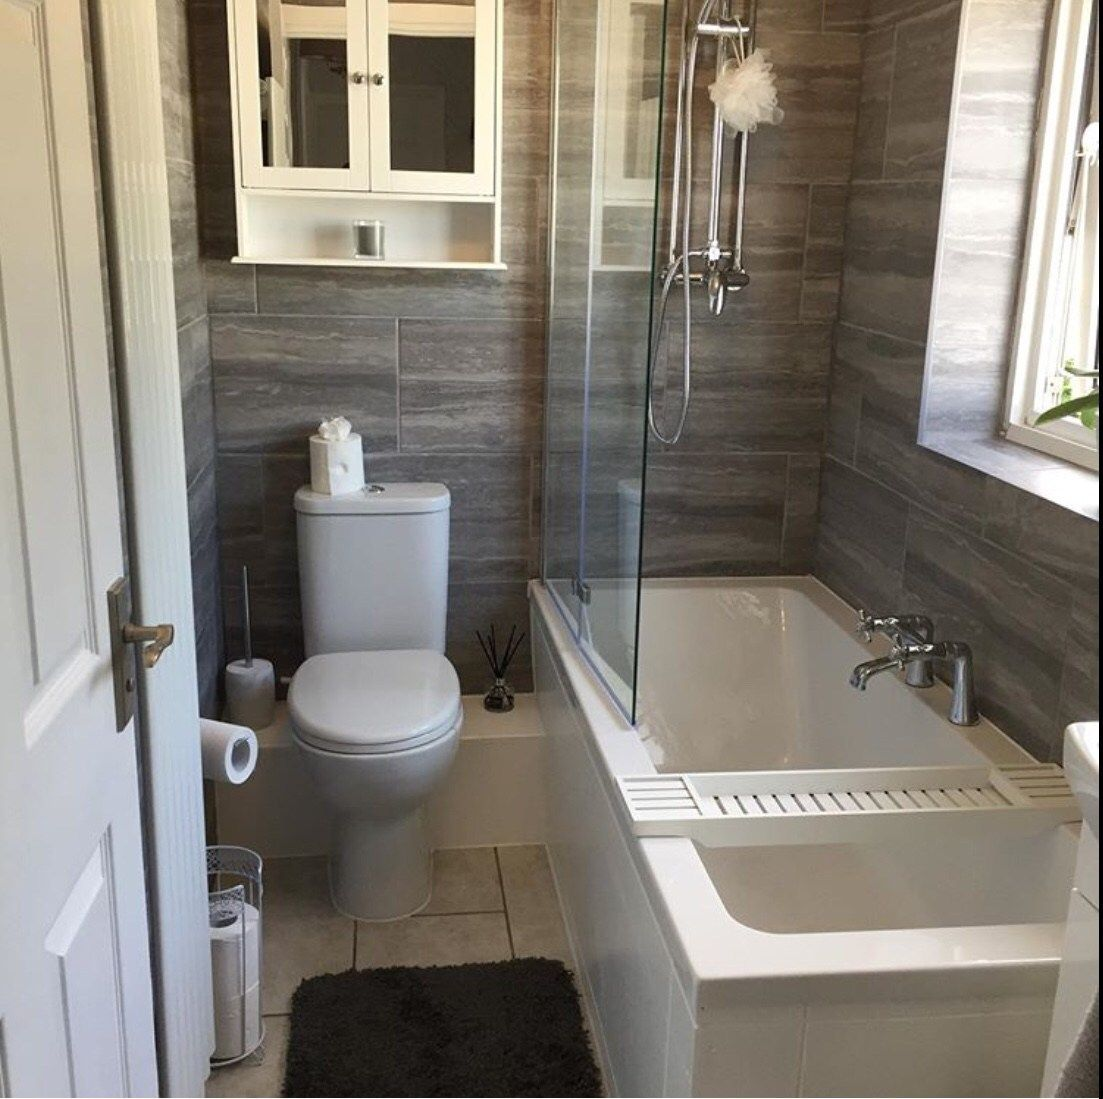 14 stunning design ideas for small bathrooms small on stunning small bathroom design ideas id=41313